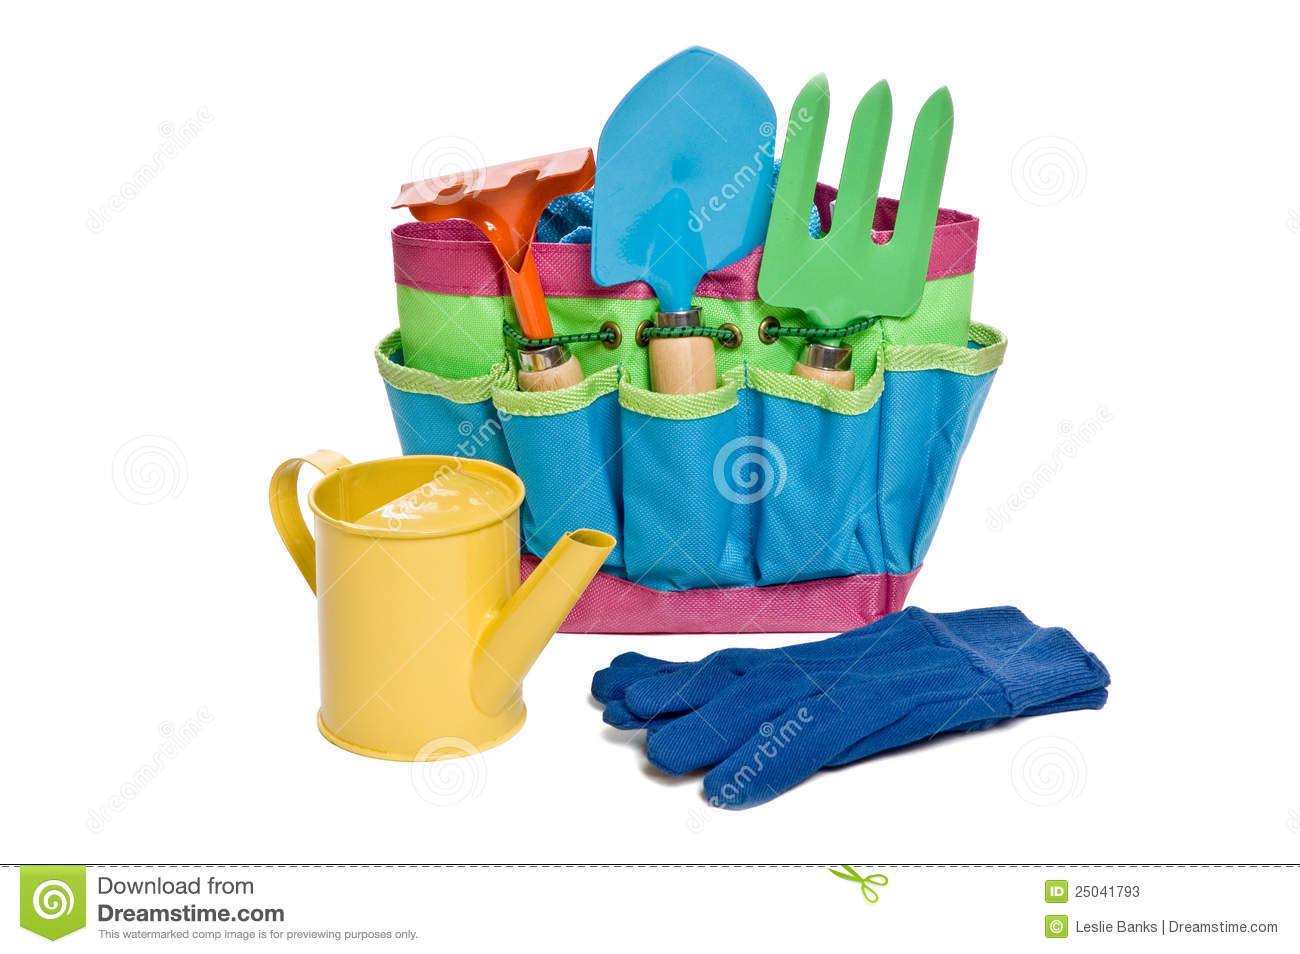 Childrens gardening tools stock photos image 25041793 for Childrens gardening tools